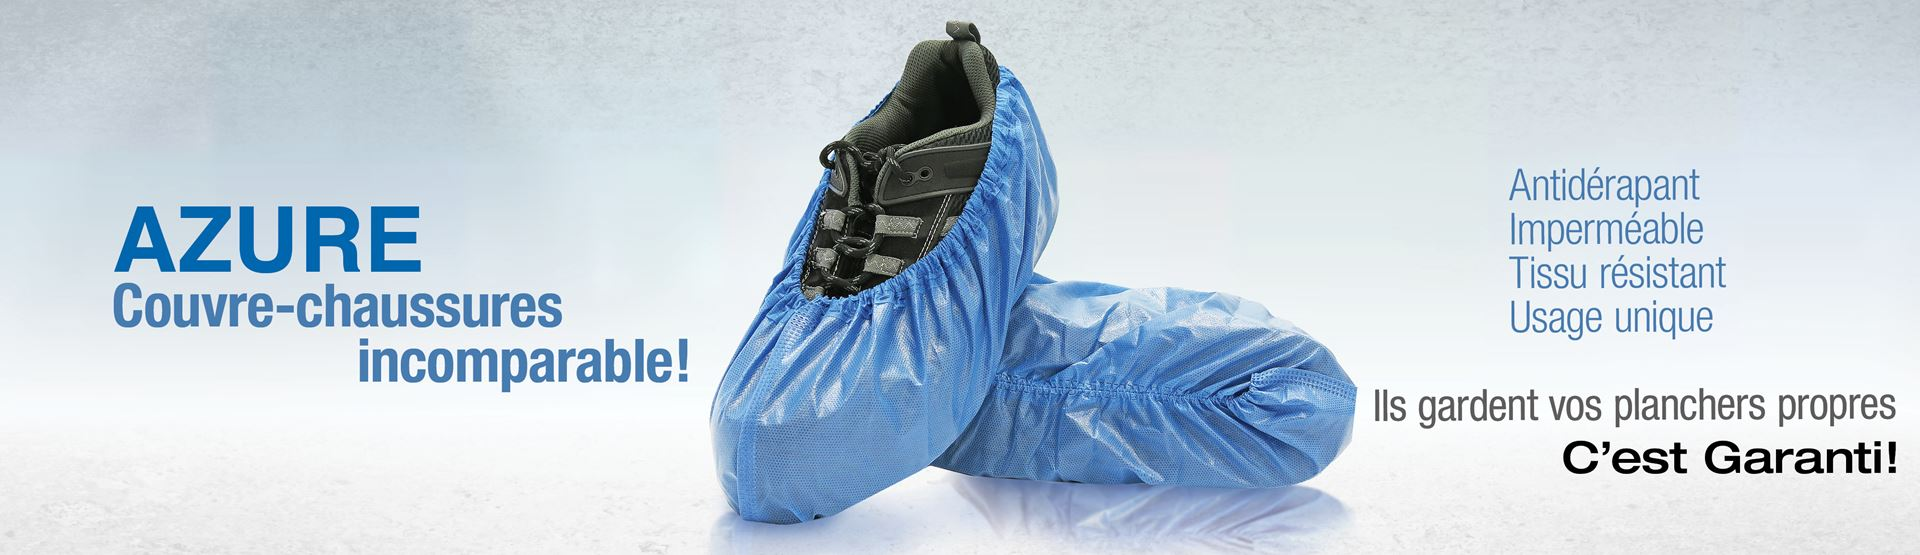 BlueMed, Azure Couvre-chaussures